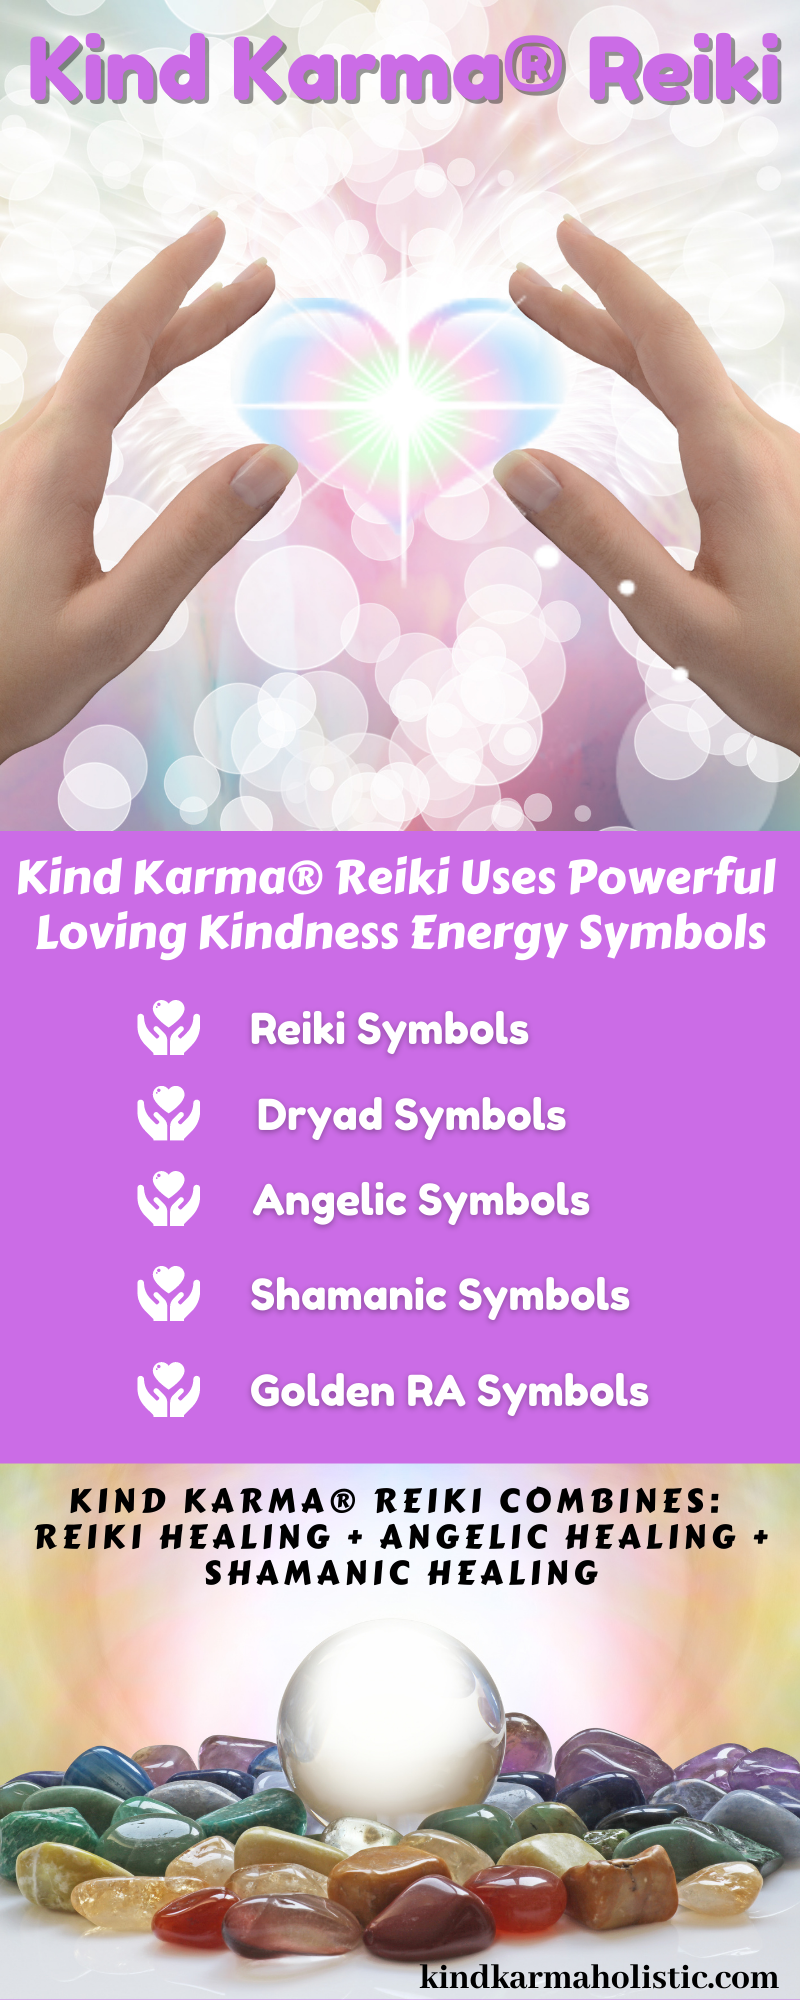 Kind Karma Reiki Description